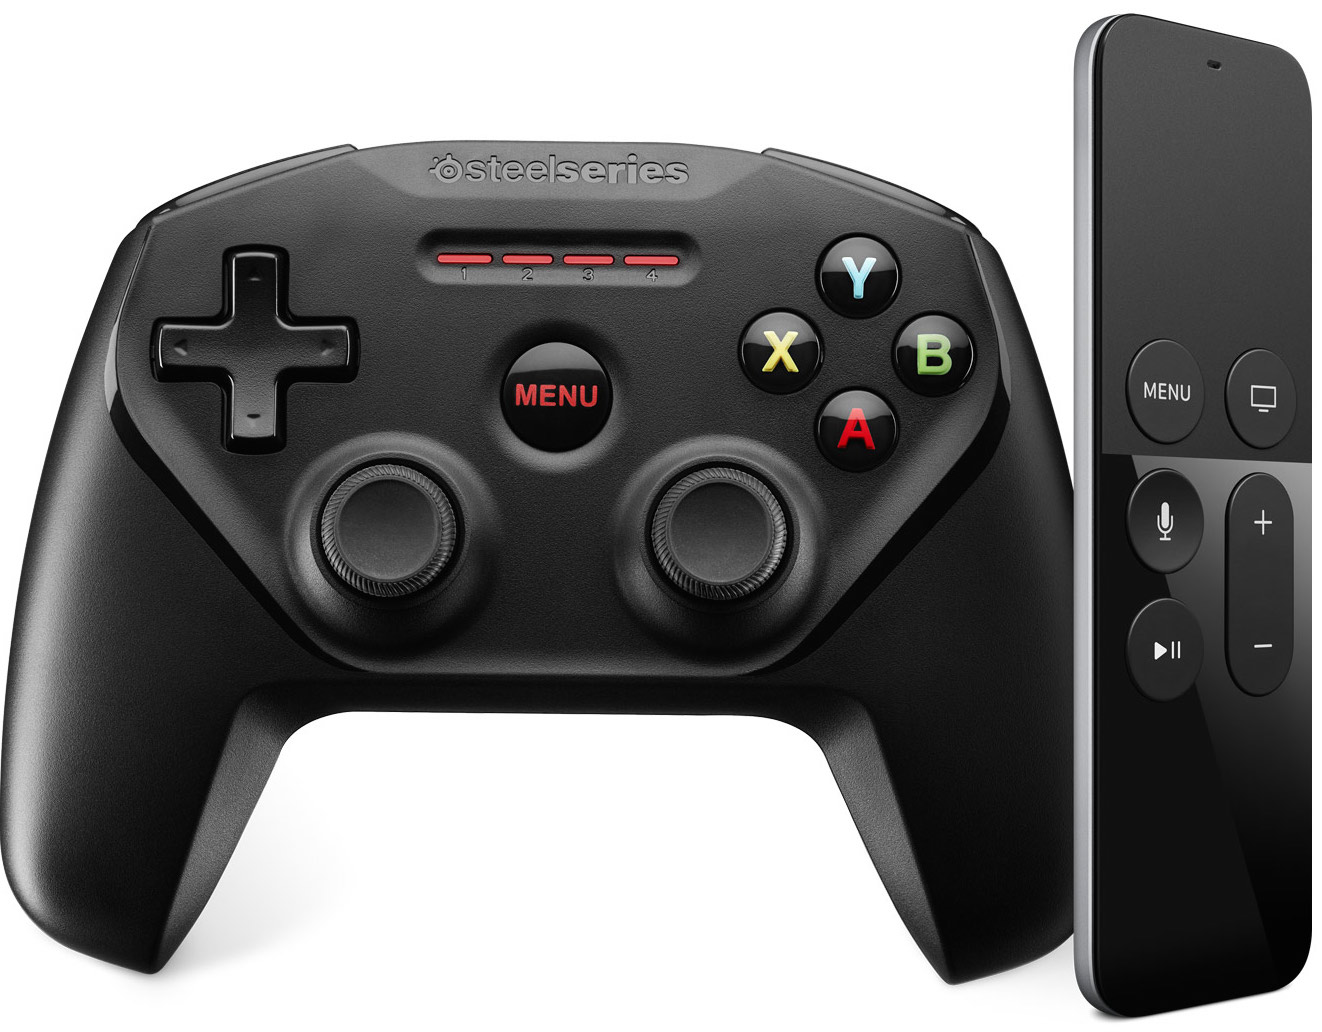 Apple TV Siri Remote SteelSeries game controller